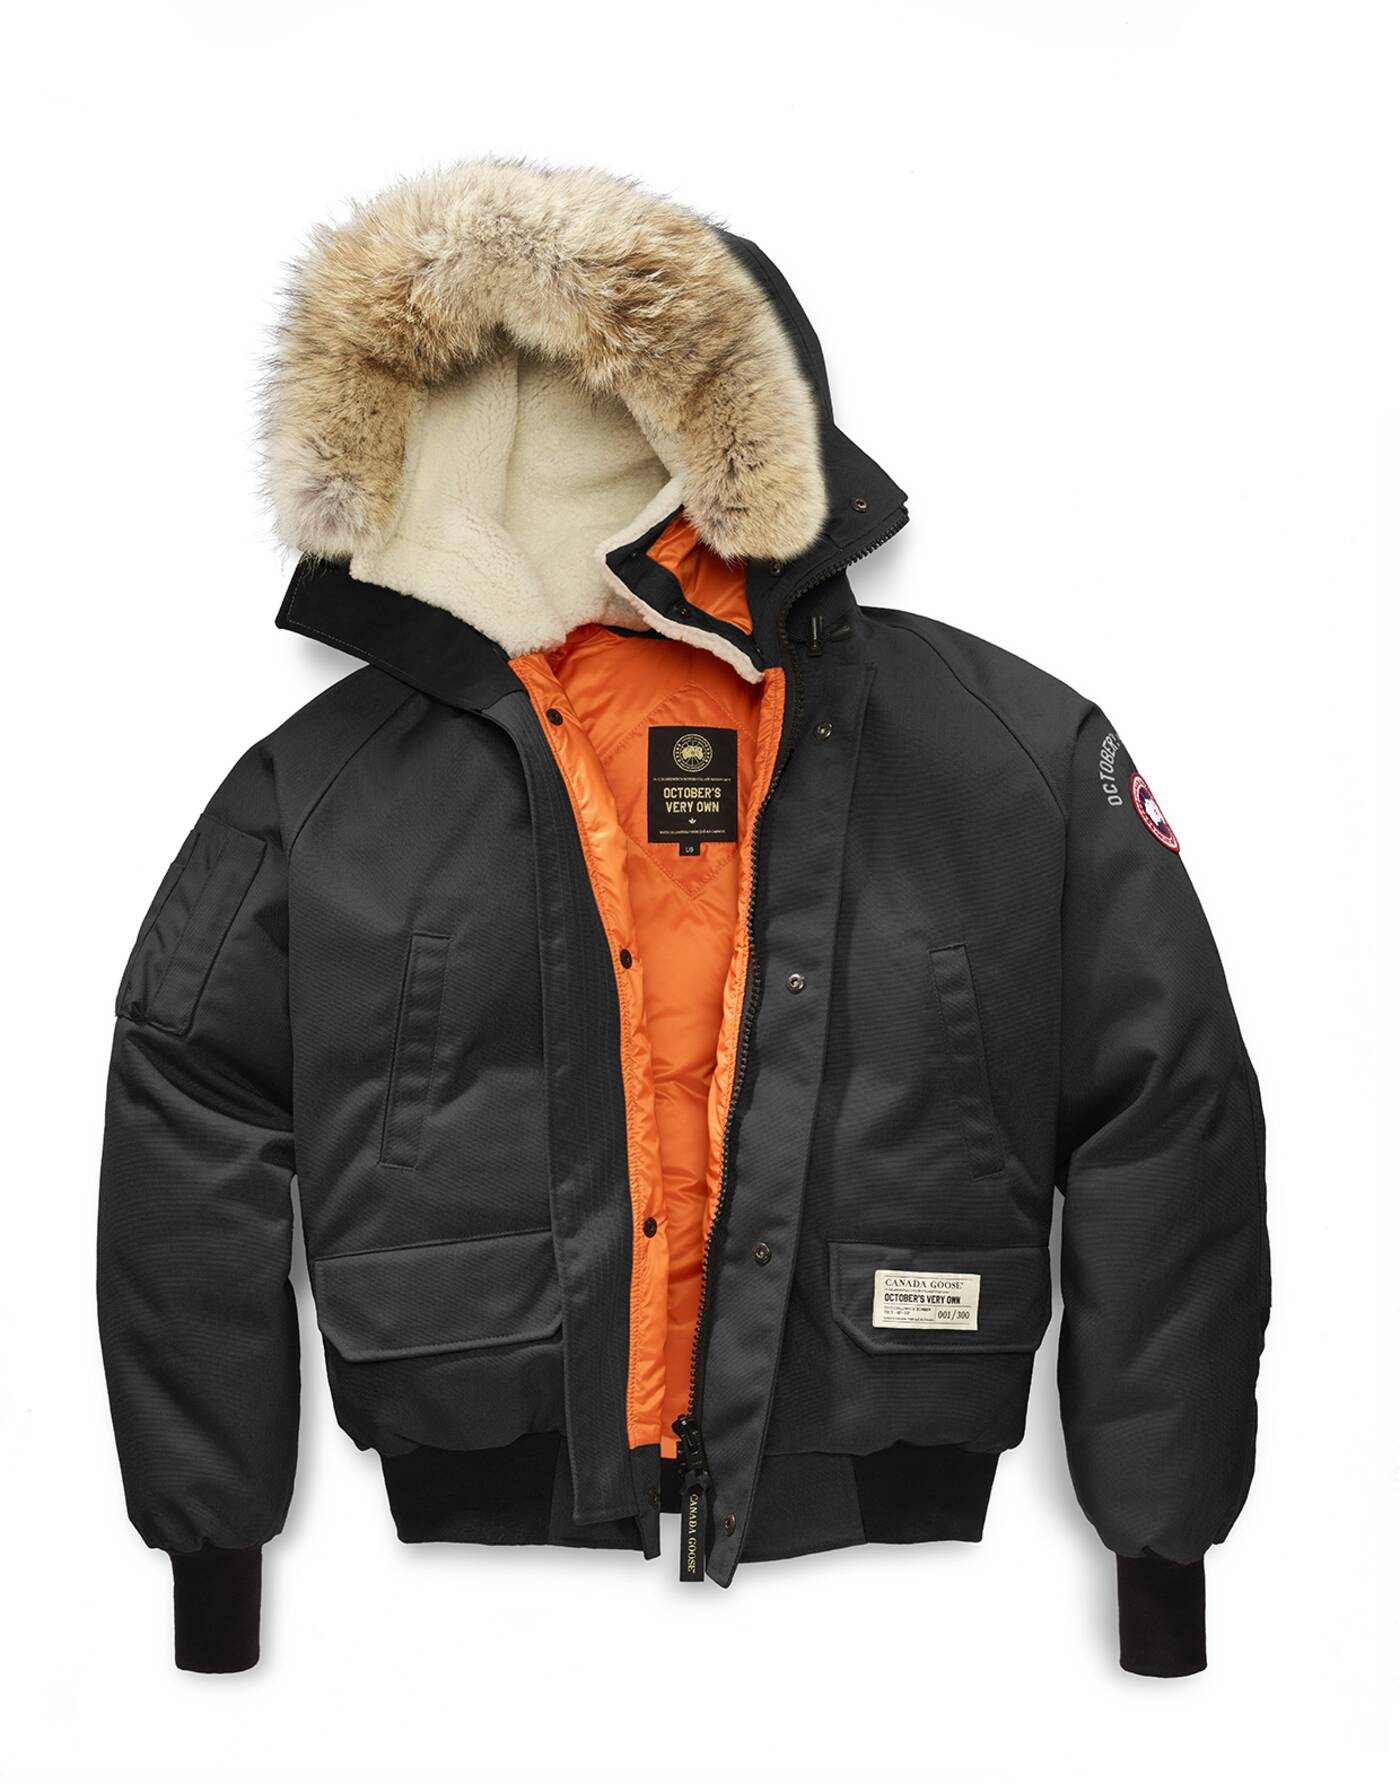 Drake and Canada Goose teaming up on winter jackets 86a56a75766f